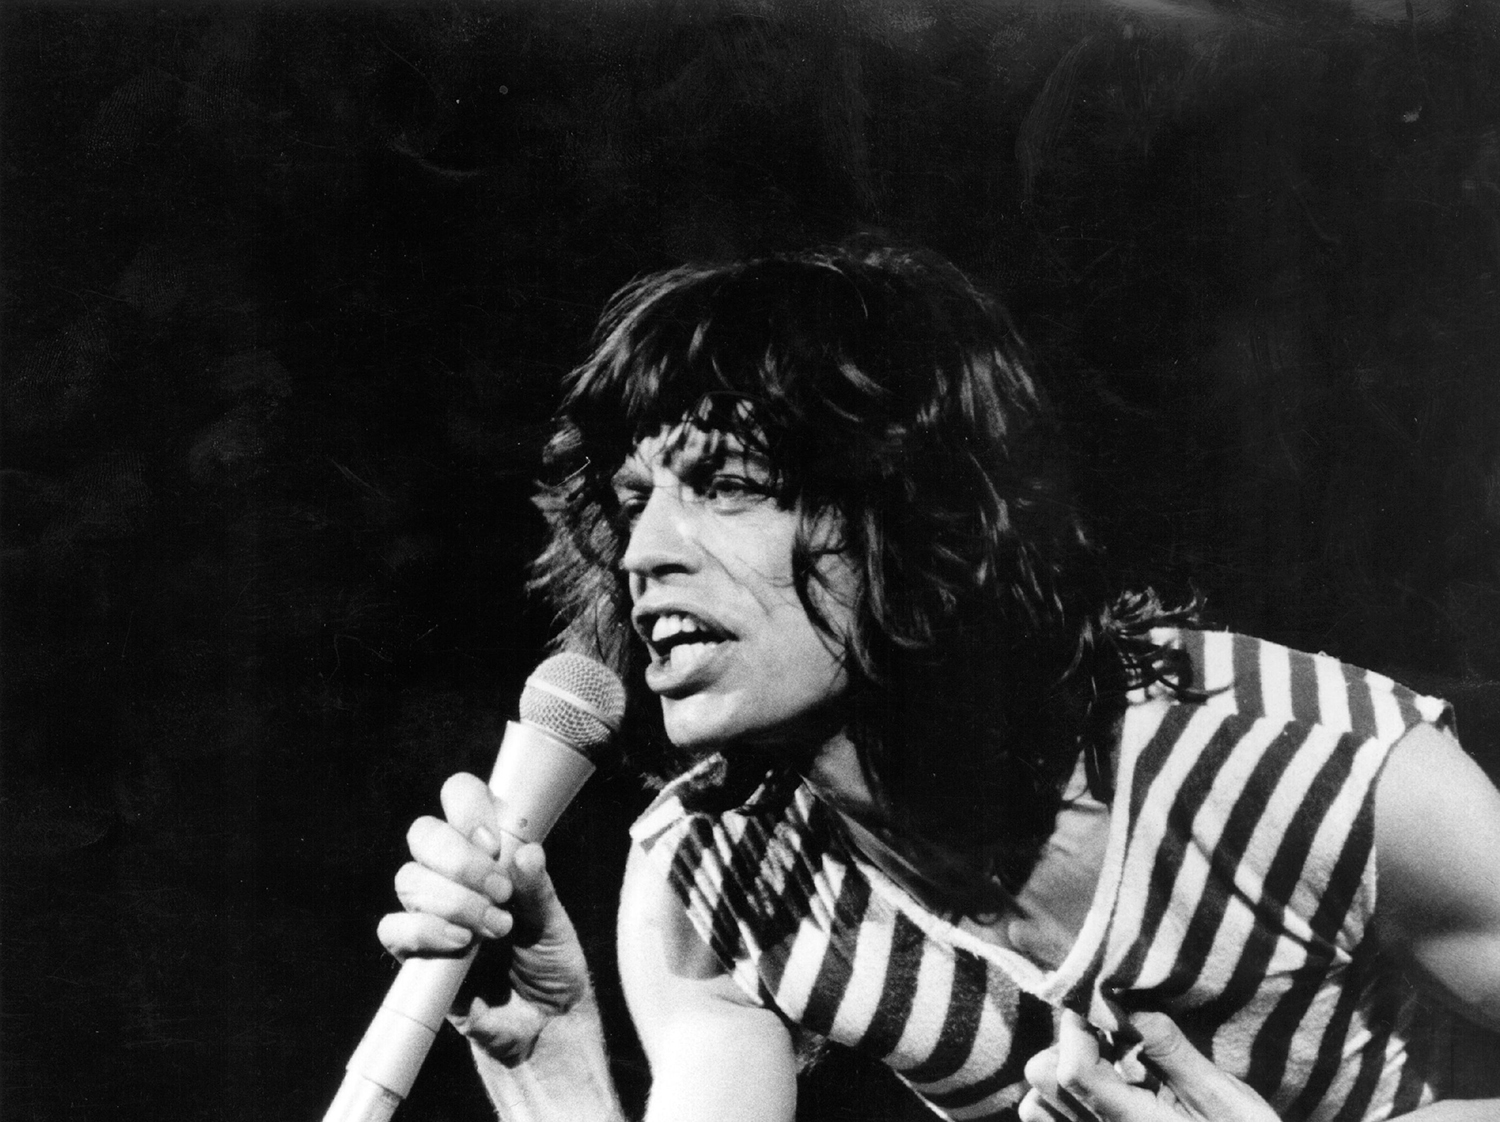 Amour Relation Homme Femme Beaux Laids also 62451 besides 33268 additionally Serpientes also Happy Birthday Mick Jagger 70 Never Moved Better 6C10743970. on de la richards